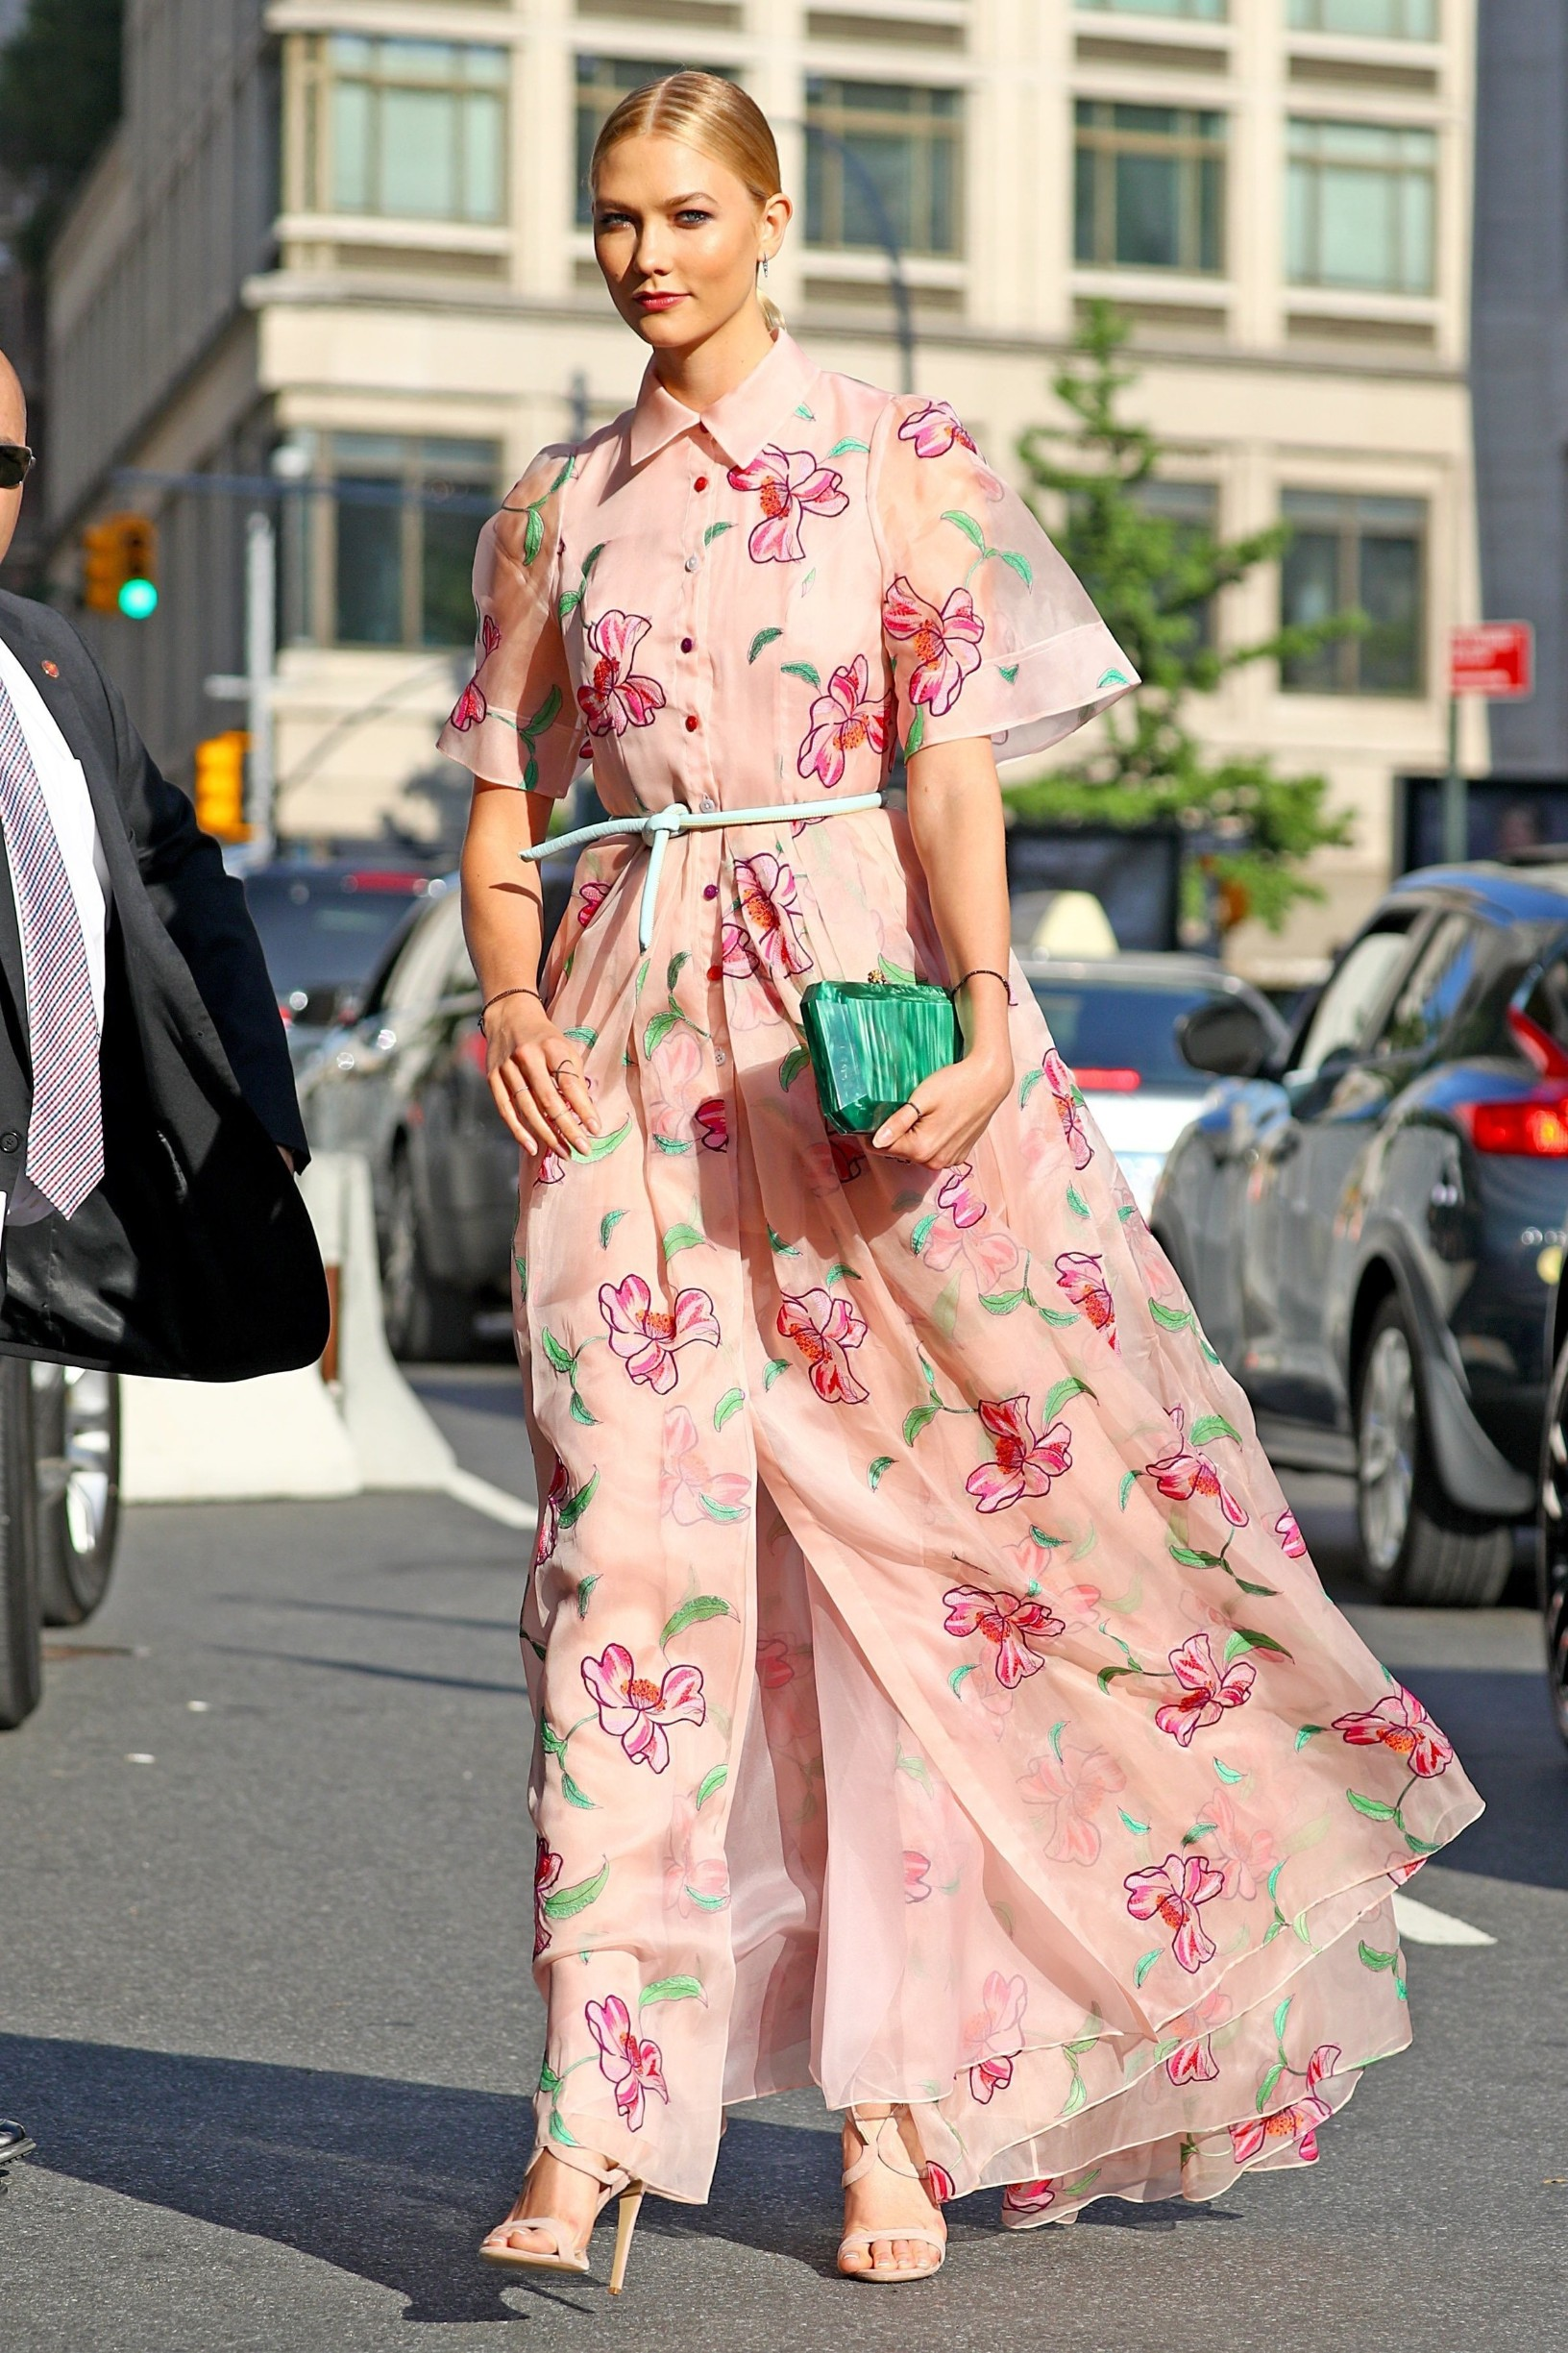 New York, NY  - Karlie Kloss heads to the FIFI awards wearing a Pink floor length floral gown with polo collar and t-shirt sleeves, NYC.  Pictured: Karlie Kloss    *UK Clients - Pictures Containing Children Please Pixelate Face Prior To Publication*, Image: 337888686, License: Rights-managed, Restrictions: , Model Release: no, Credit line: BACKGRID / Backgrid USA / Profimedia